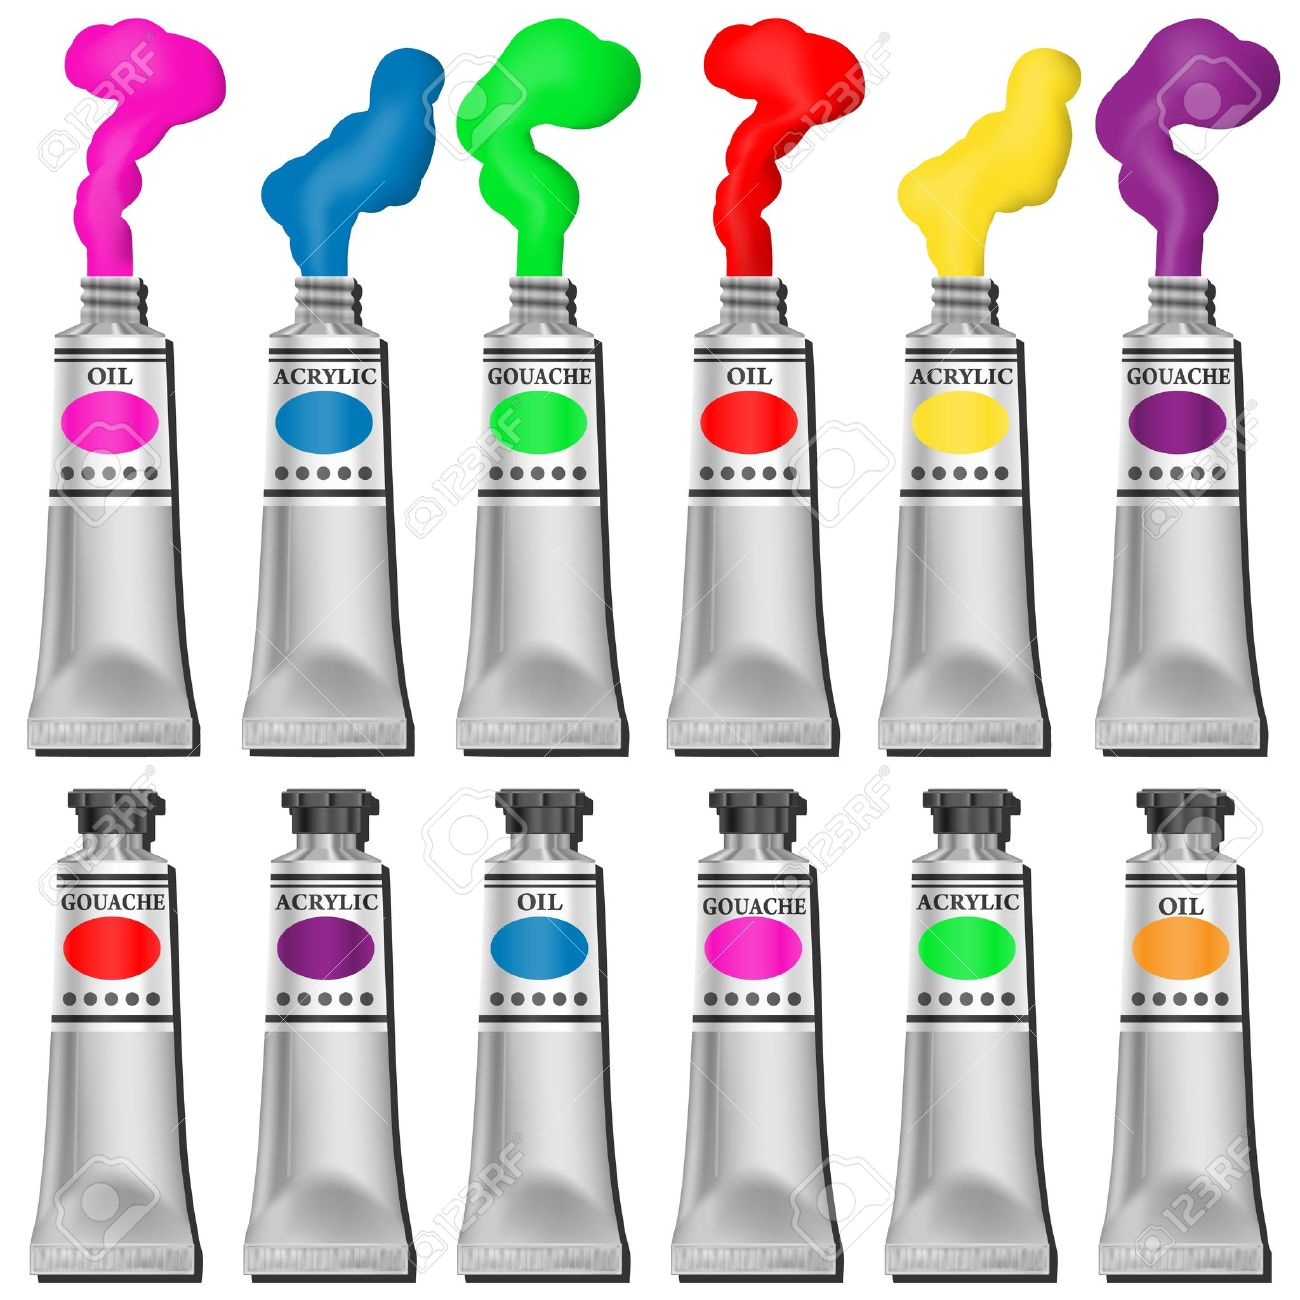 A Selection of Paint Tubes Stock Vector - 12349932